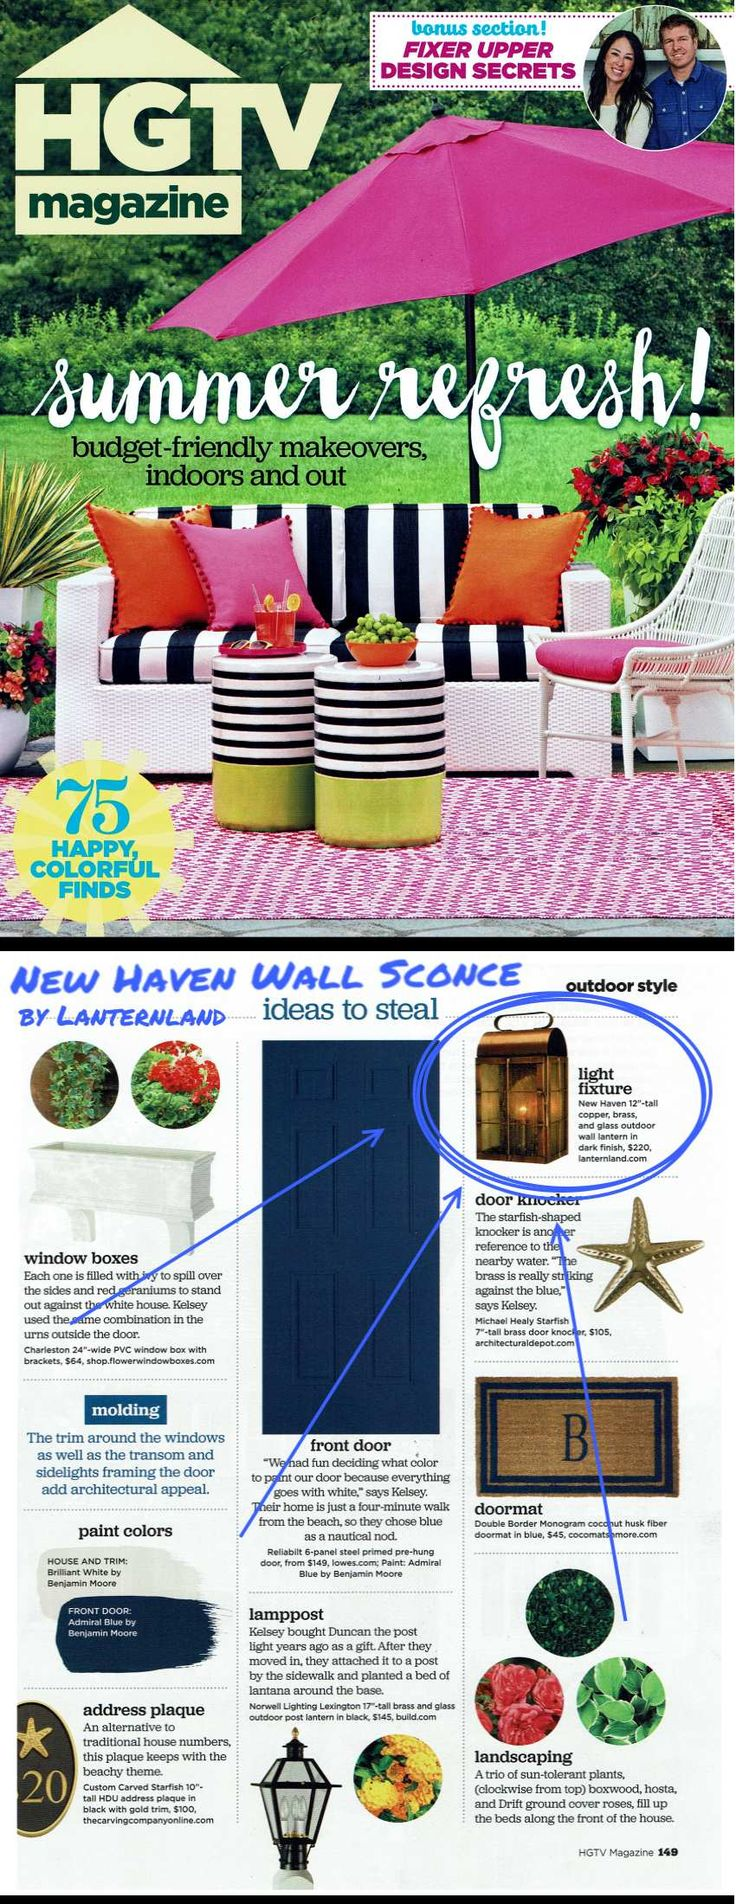 New Haven Wall Sconce by @Lanternland as seen in the July / August 2016 @hgtv  Magazine.